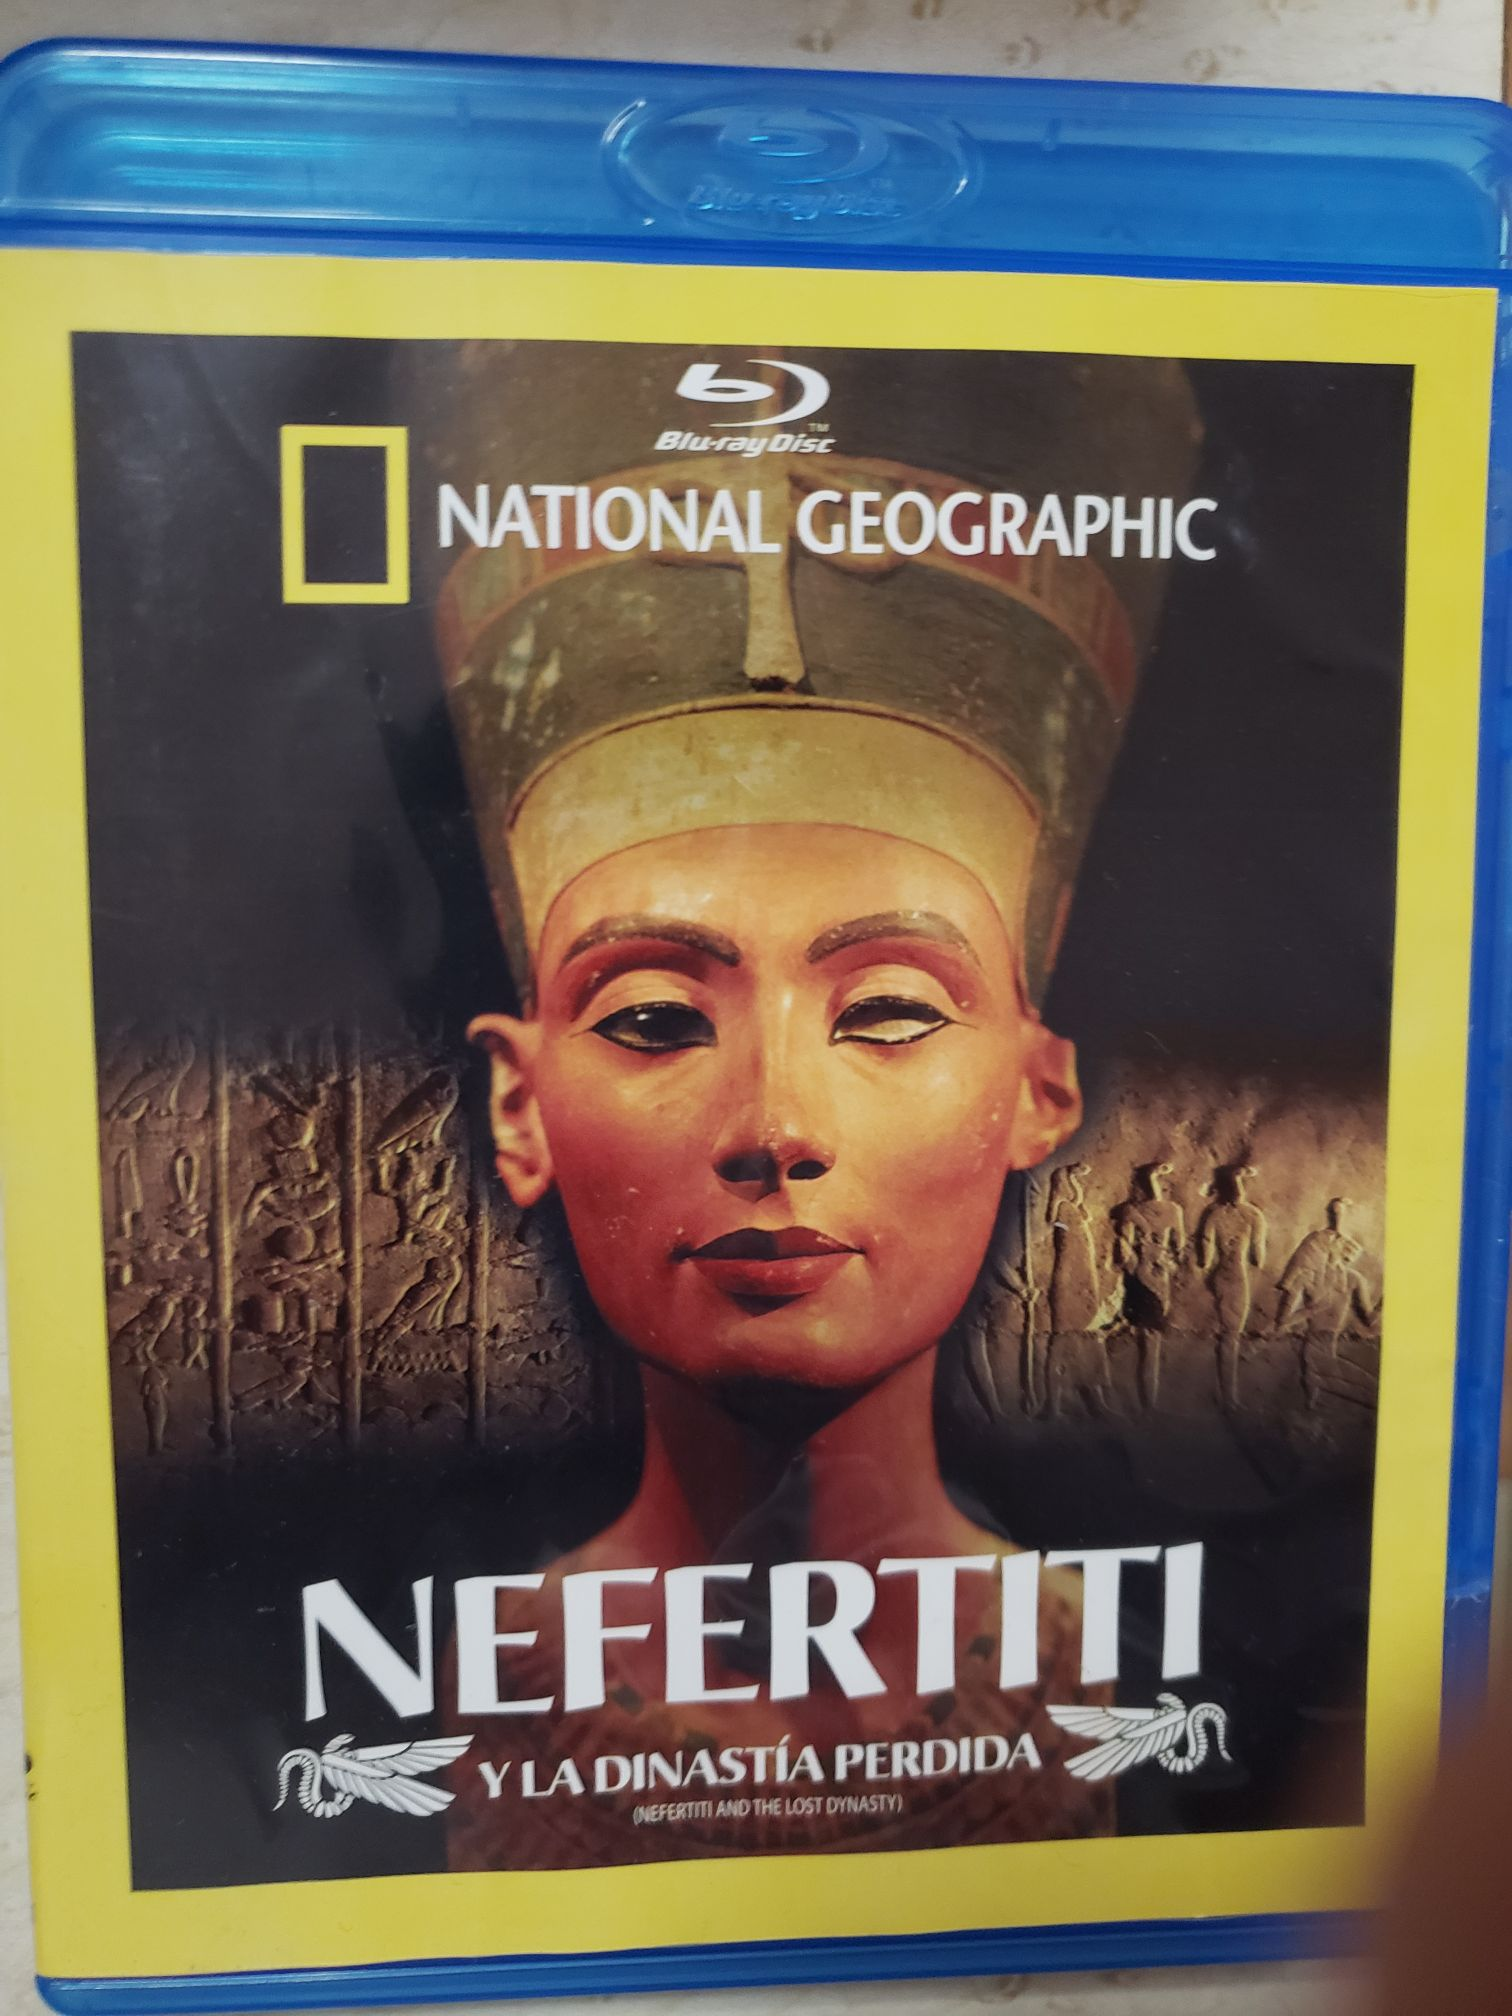 Nefertitinational Geographic Widescreen -  cover